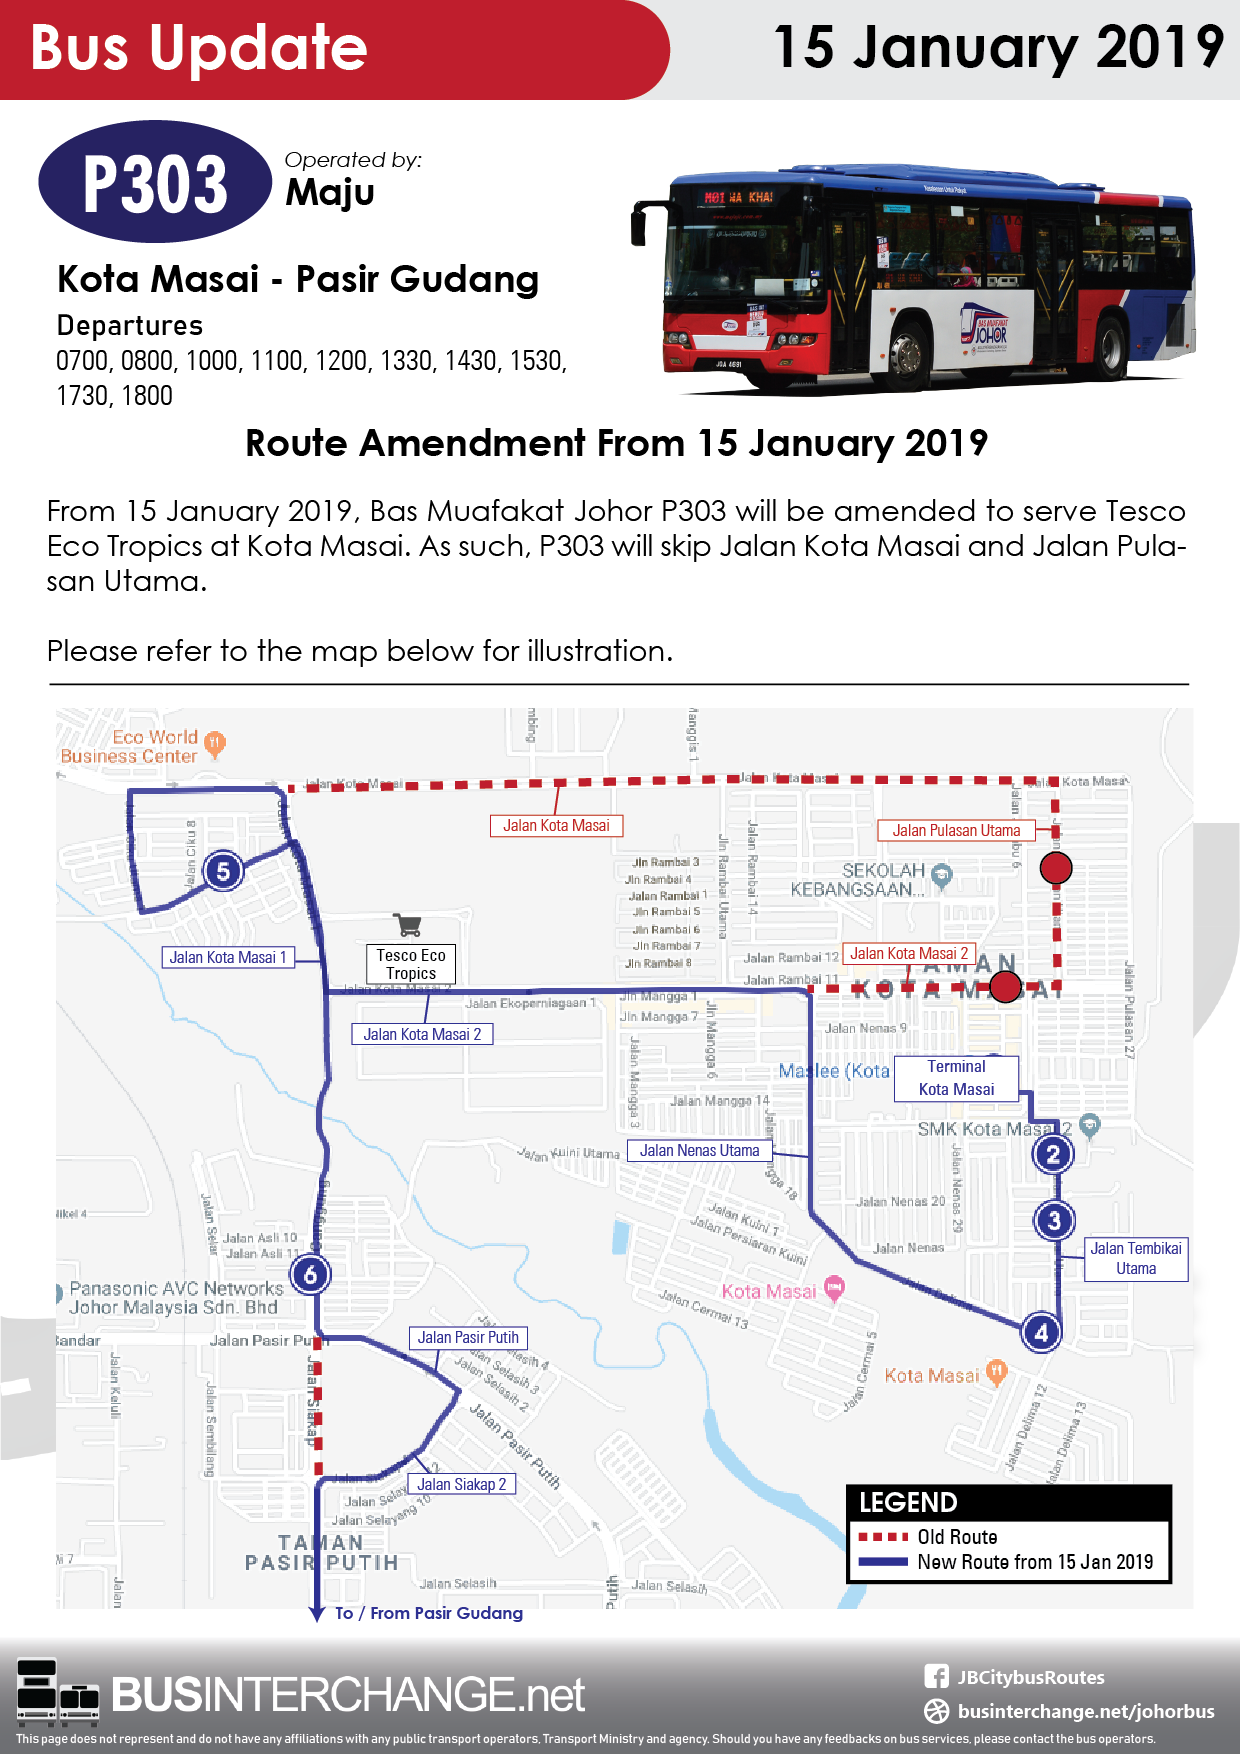 Route amendment of Bas Muafakat Johor P303 from 15 January 2019.